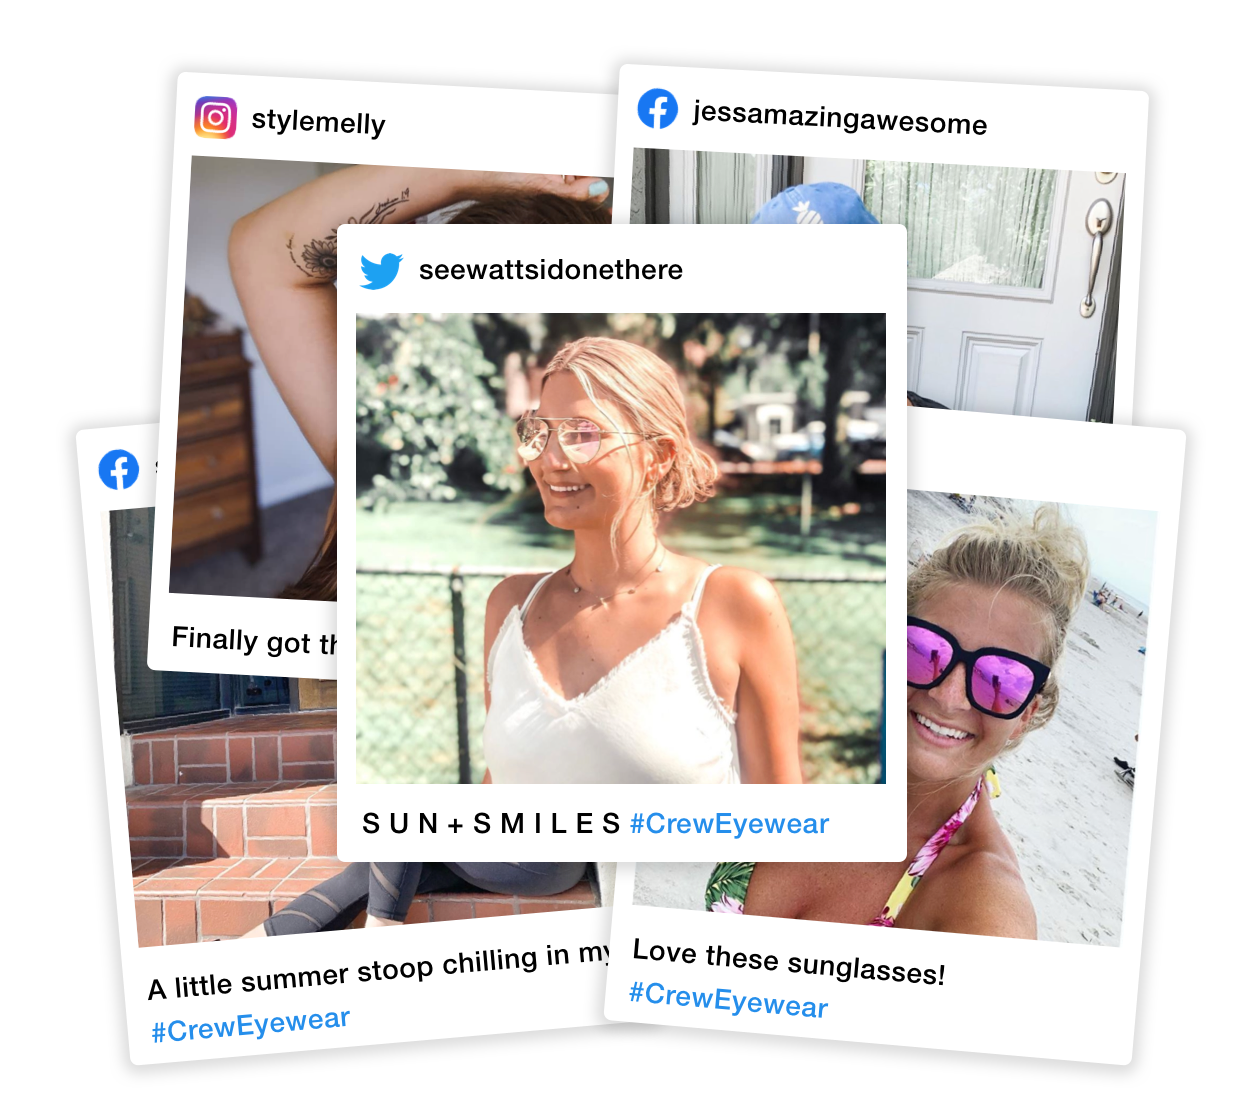 Drive user-generated content on social media with brand ambassadors